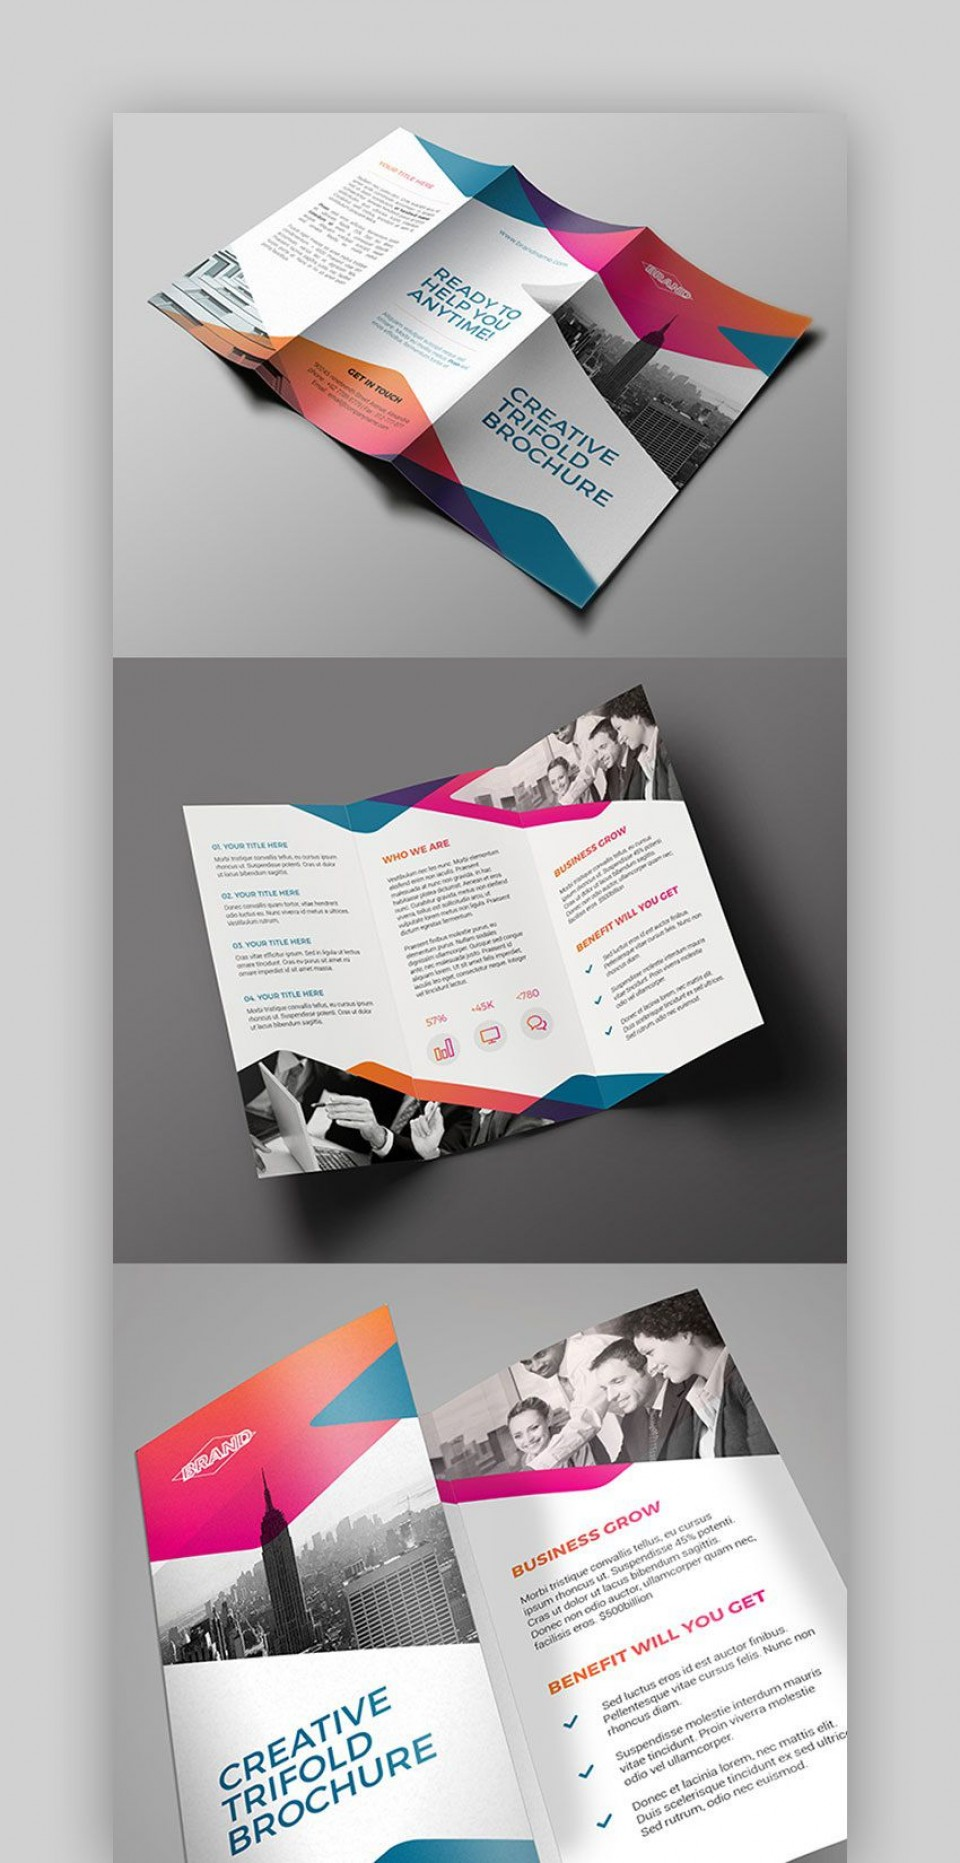 008 Amazing Indesign Trifold Brochure Template Picture  Tri Fold A4 Bi Free Download960